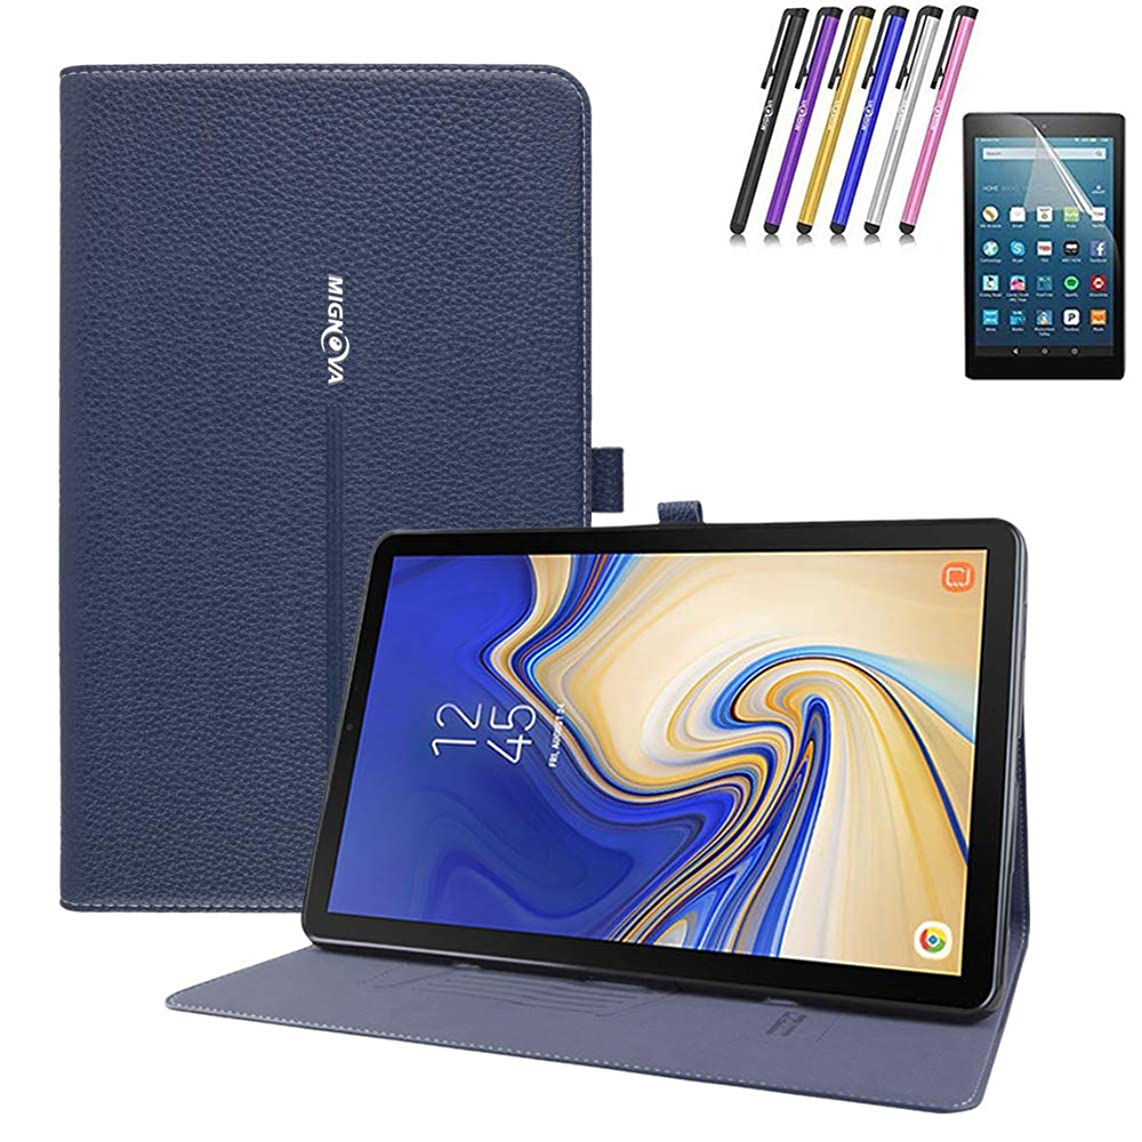 Folio Case Samsung Galaxy Tab A 8.0 2018 (Model SM-T387 Verizon/Sprint),Premium Leather Tablet Cover Pencil Holder Multiple Viewing Angles with Screen Protector Film+Stylus Pen (Blue)